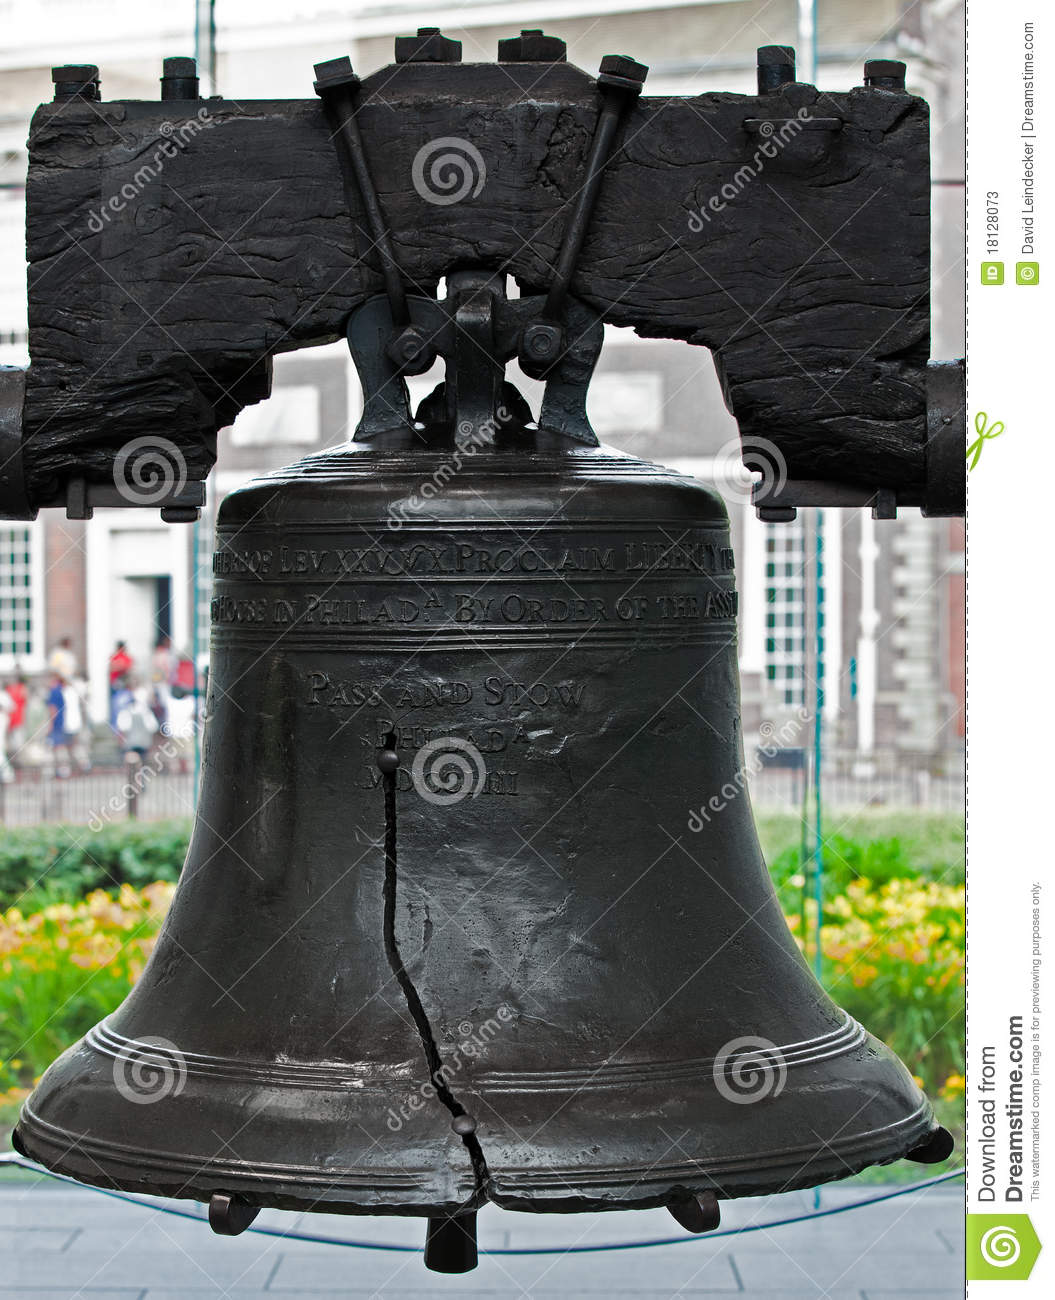 Liberty Bell, Philadelphia, PA Stock Photos - Image: 18128073